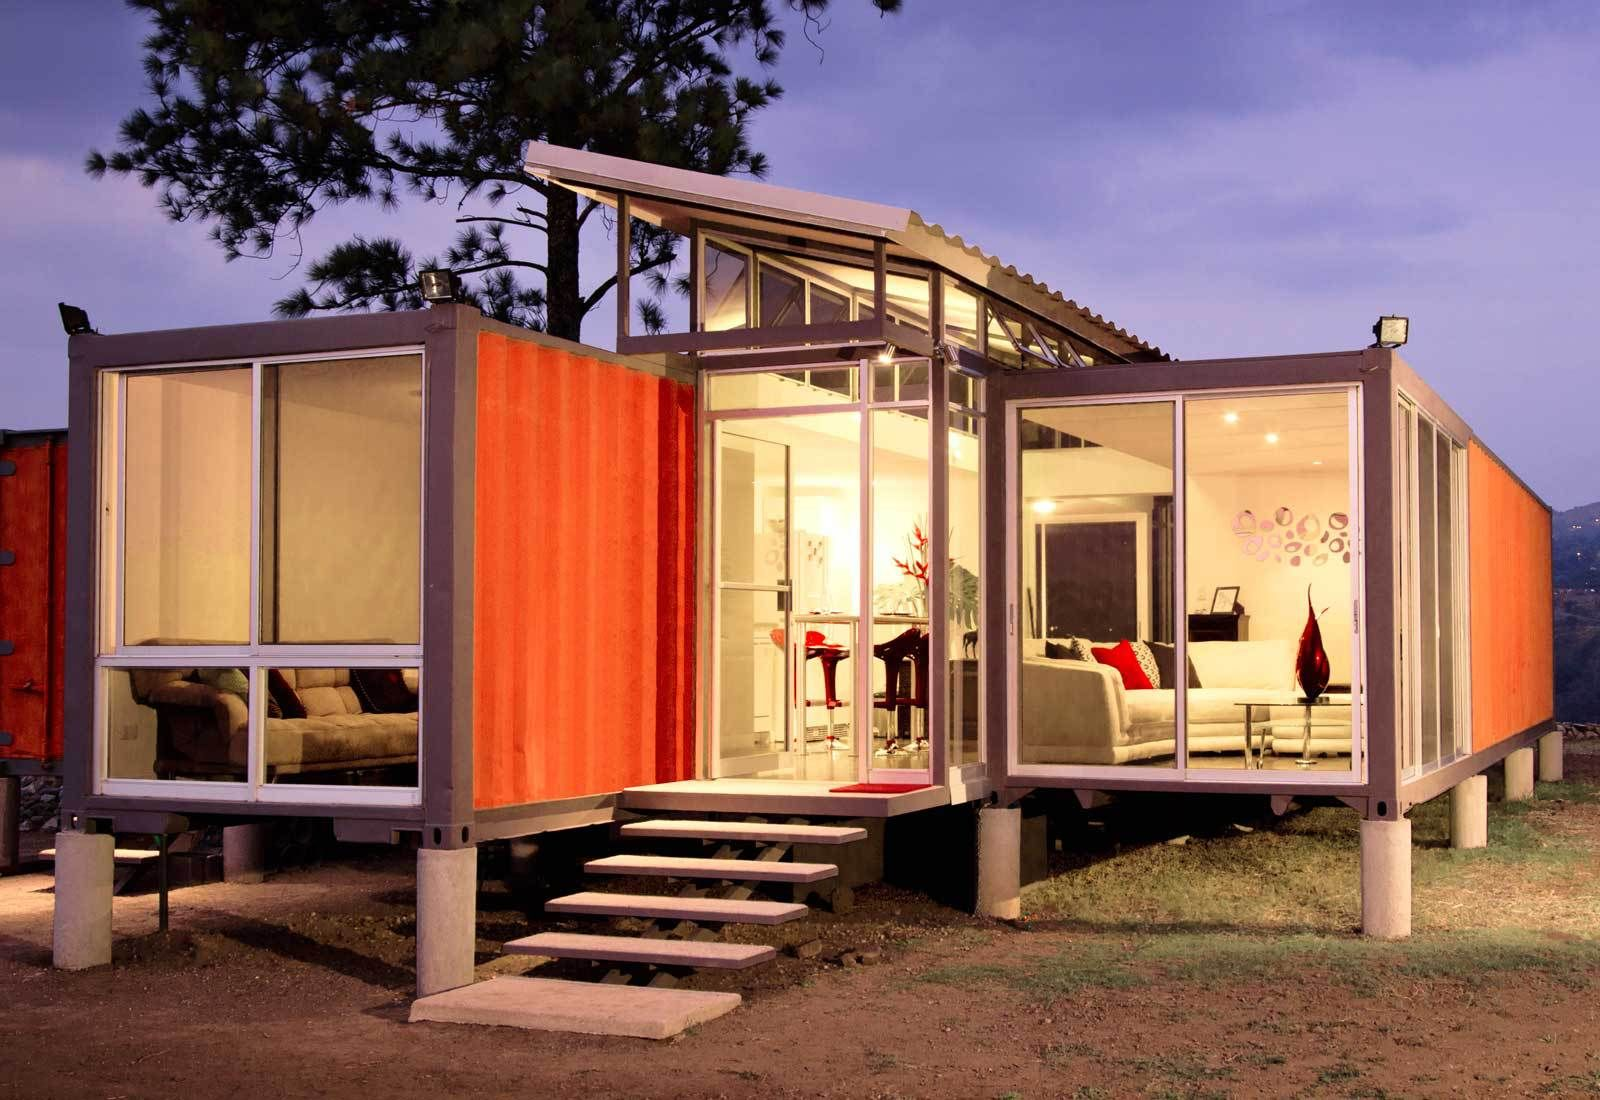 Going Off Grid 5 Inspiring And Affordable Ways To Live Off The Grid Container House Container House Plans Building A Container Home